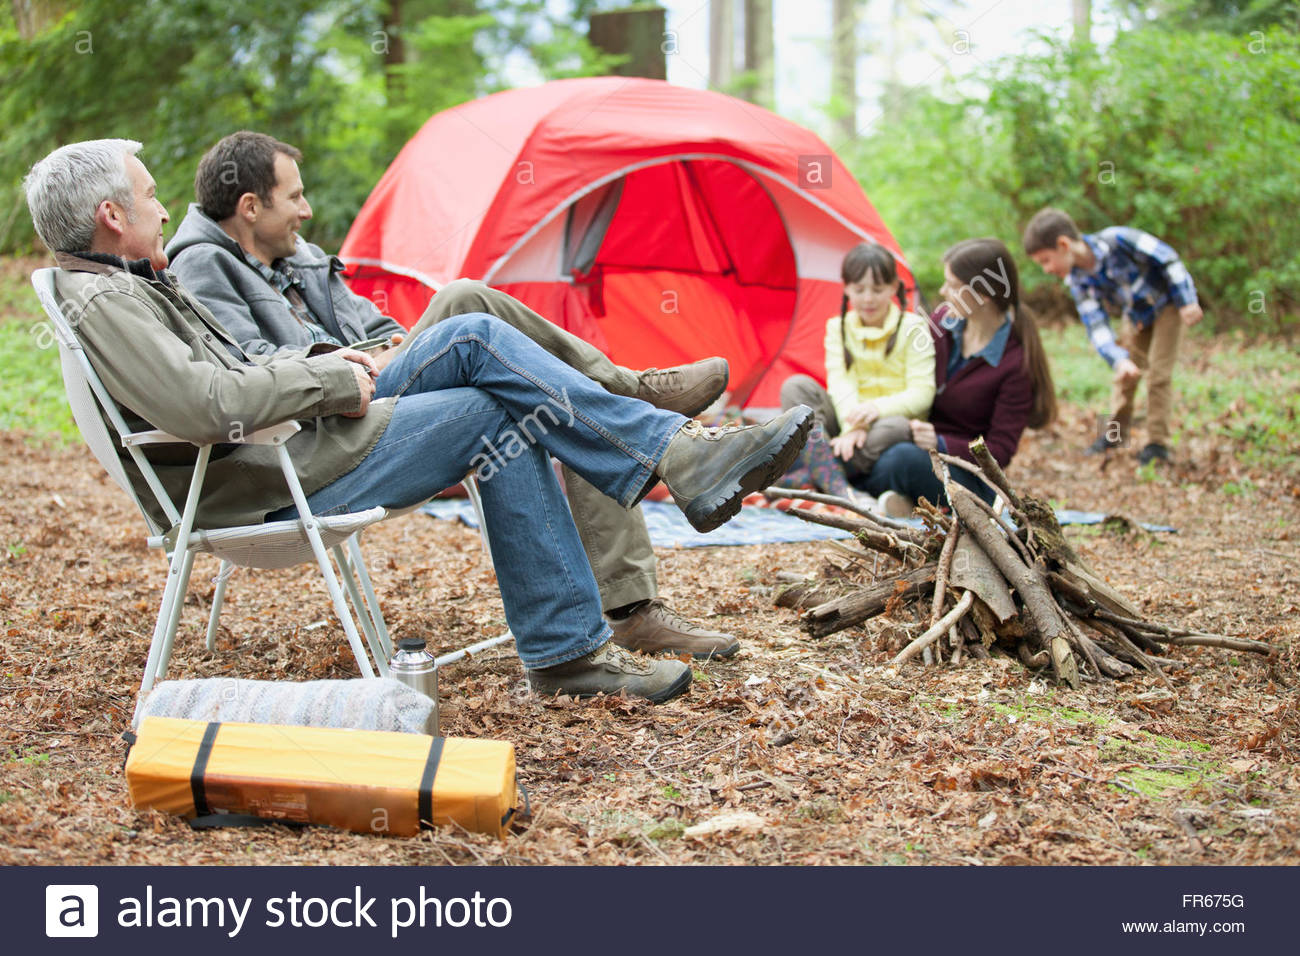 three generations of people out camping - Stock Image